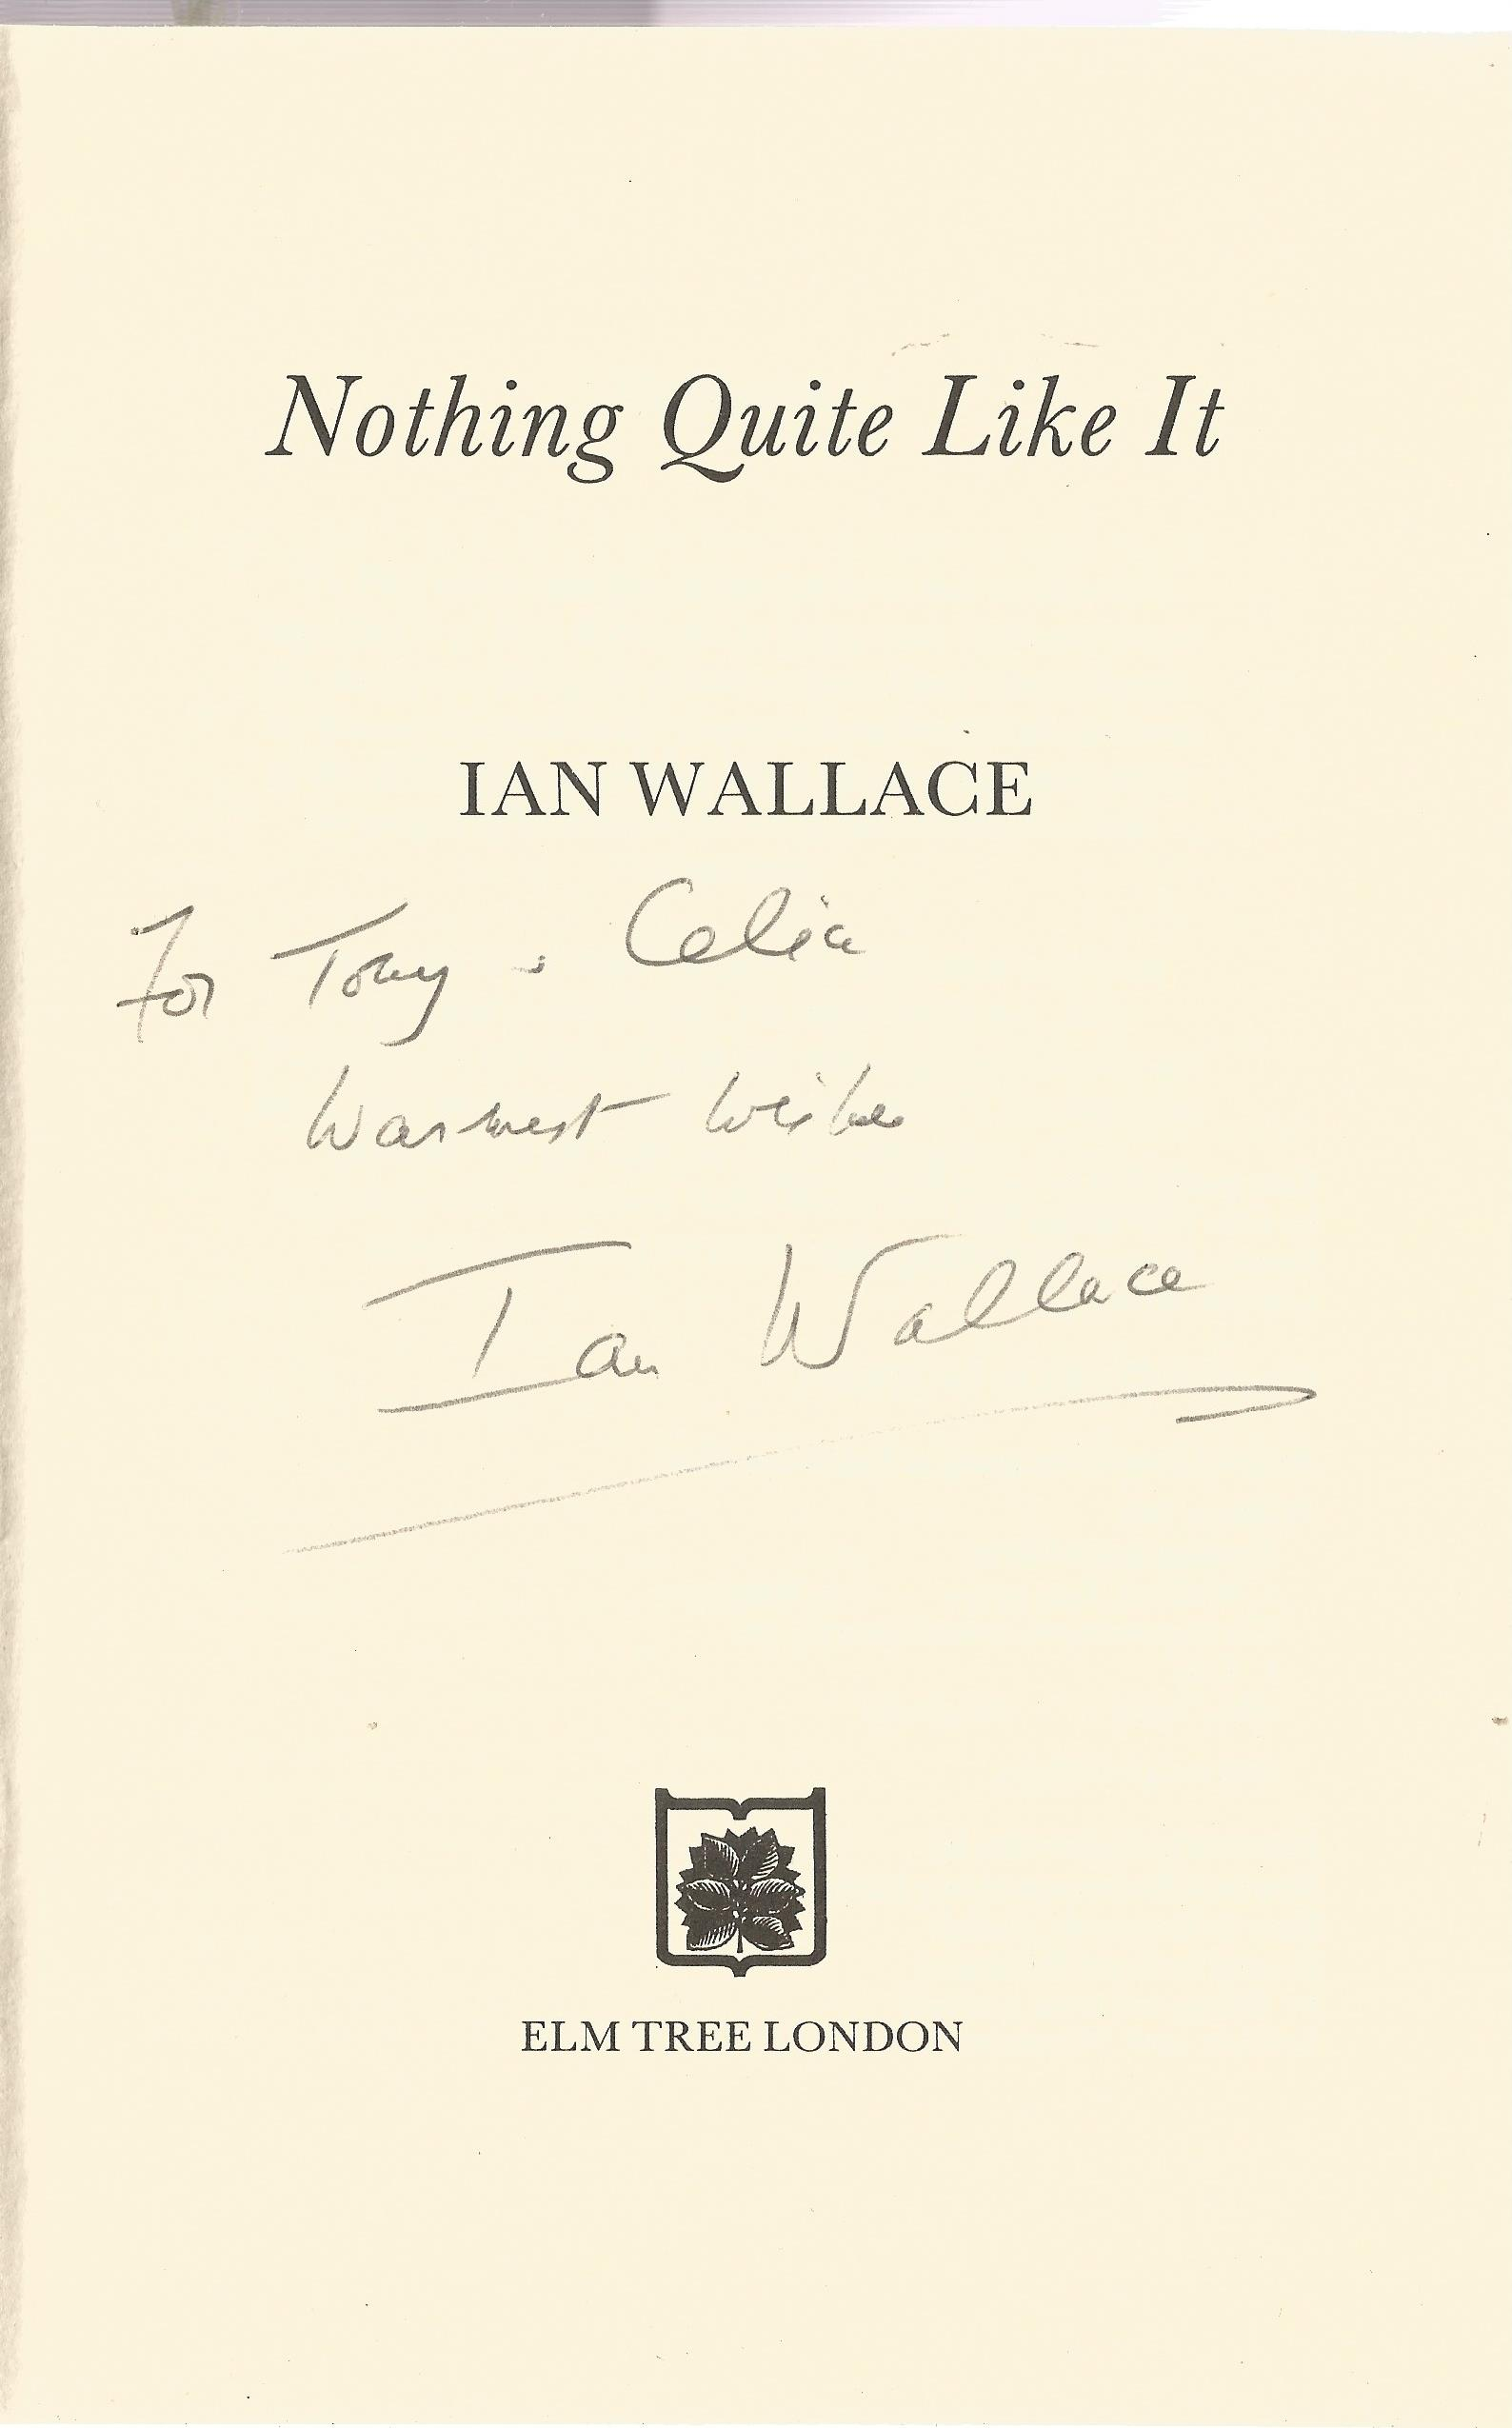 Ian Wallace Hardback Book Nothing Quite like it signed by the Author on the Title Page First Edition - Image 2 of 2